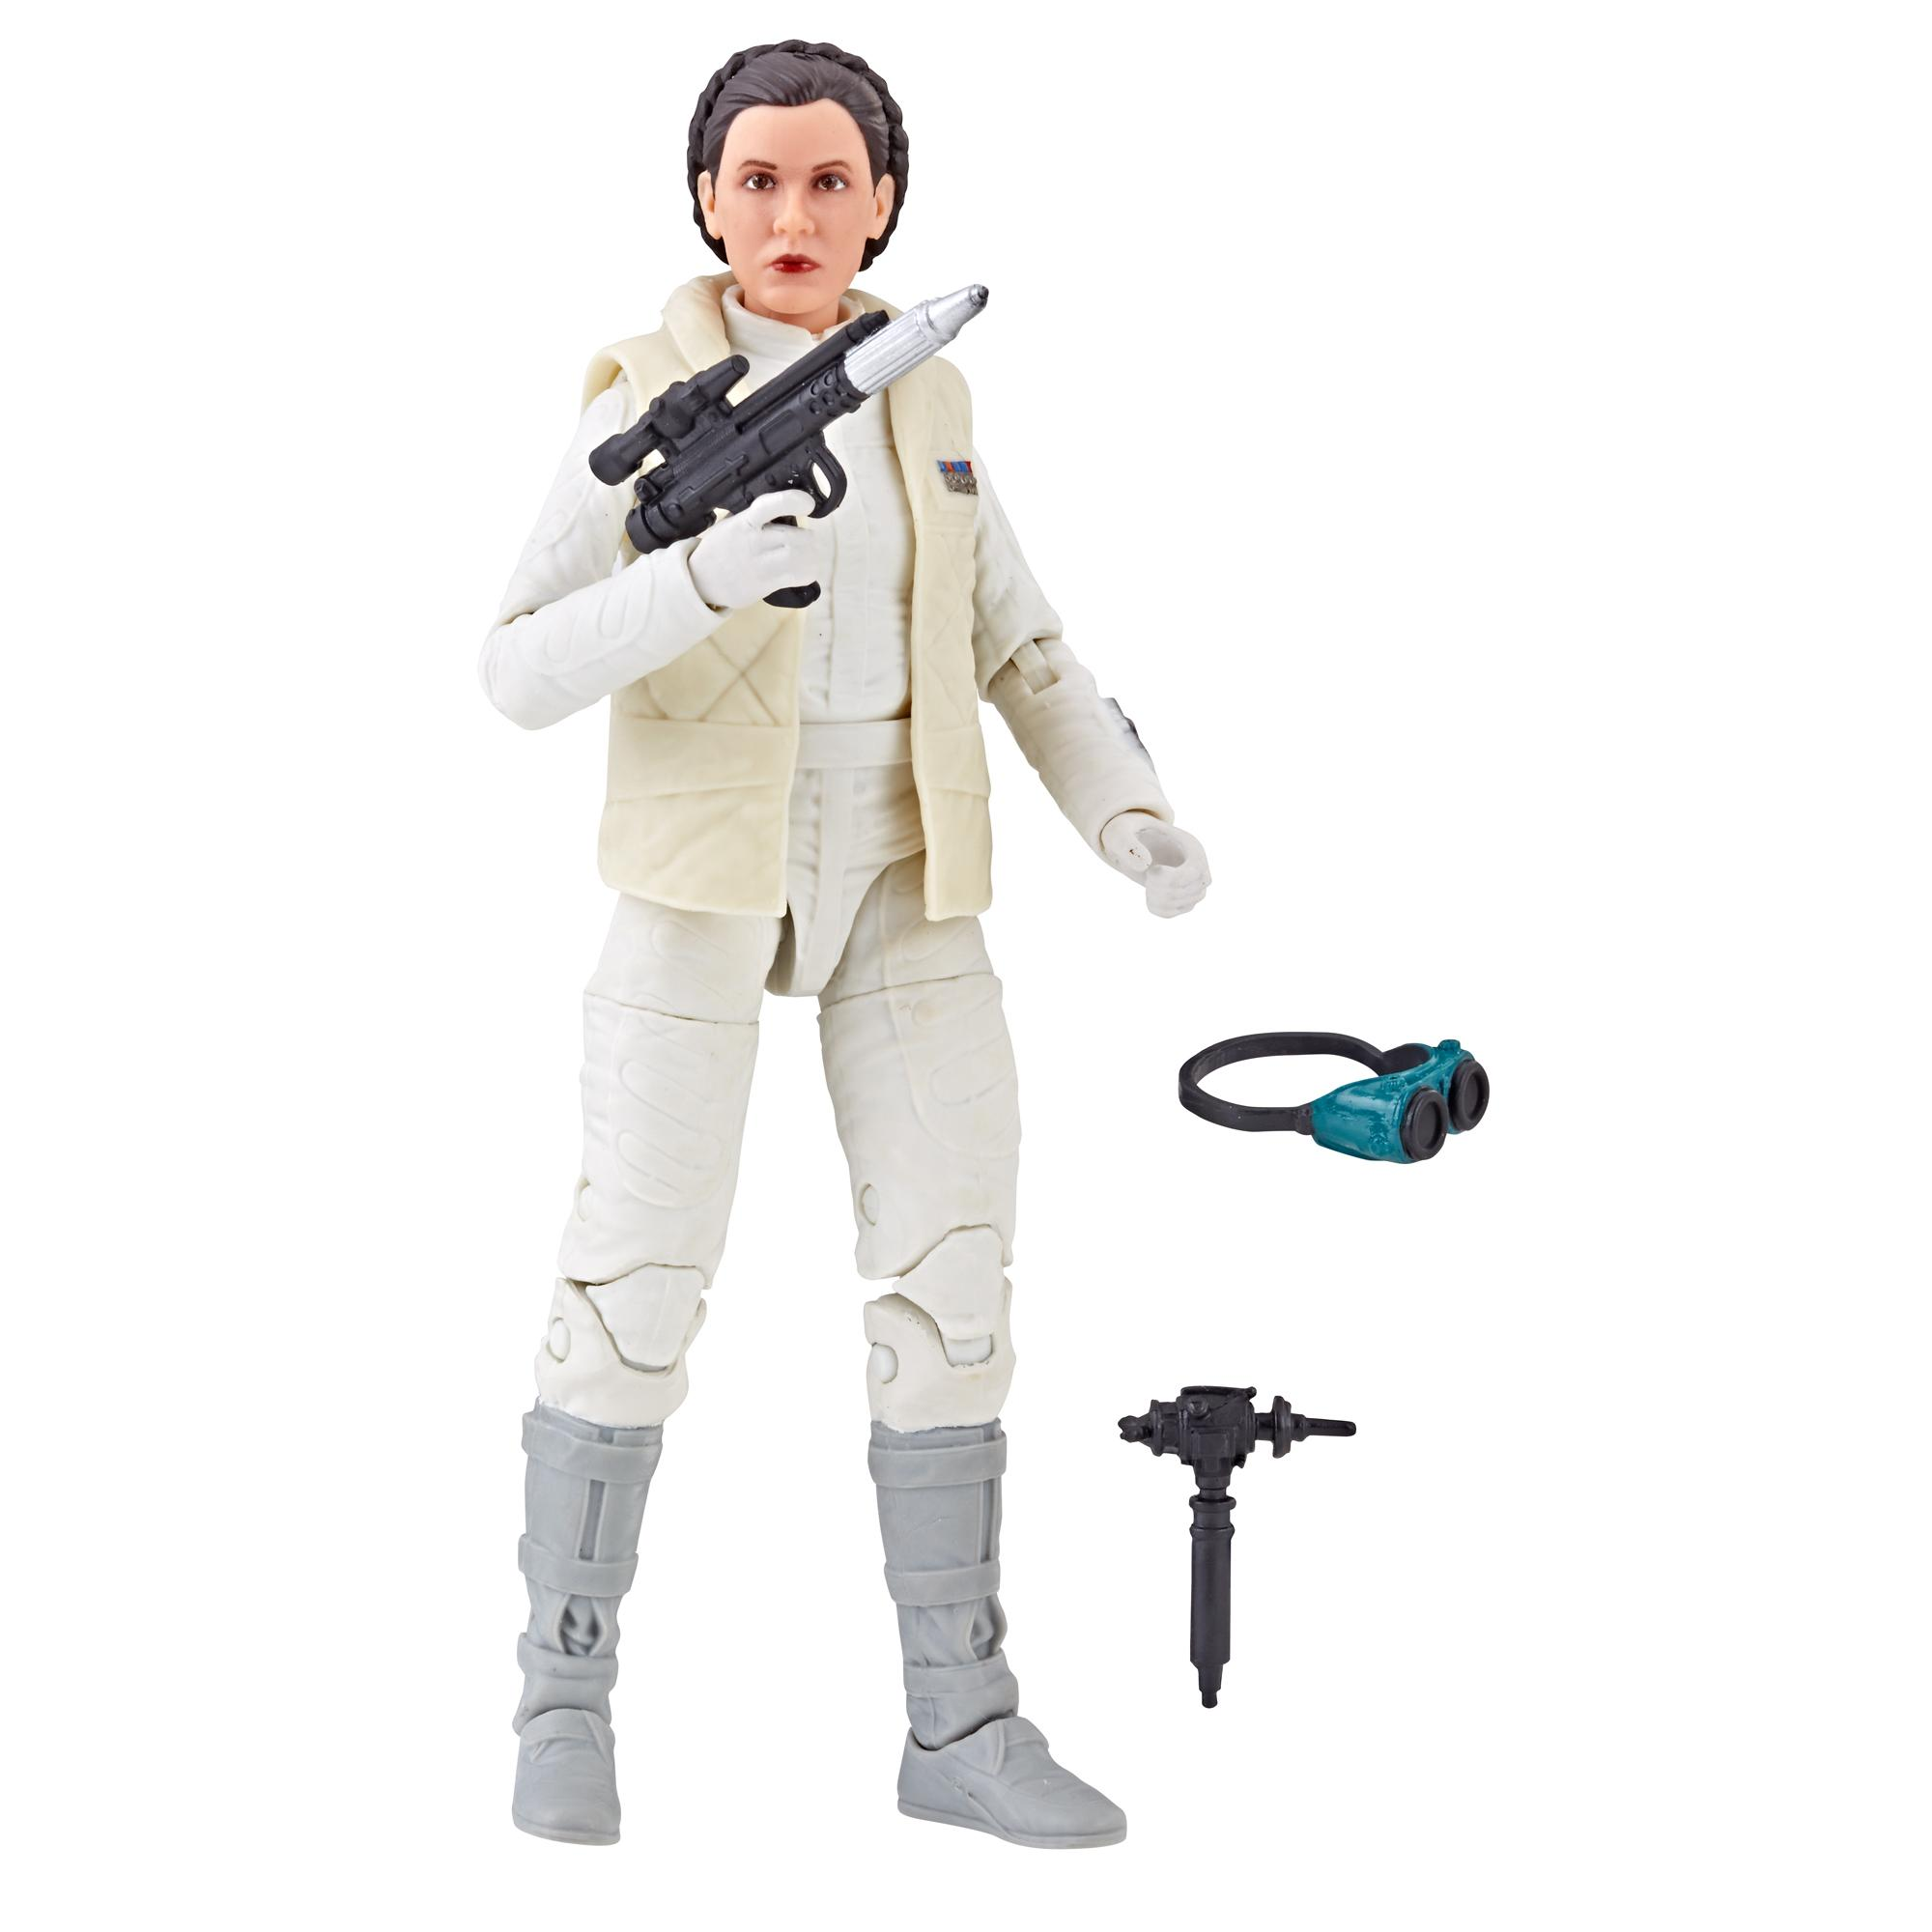 Star Wars The Black Series 6-inch Princess Leia Organa (Hoth) figure